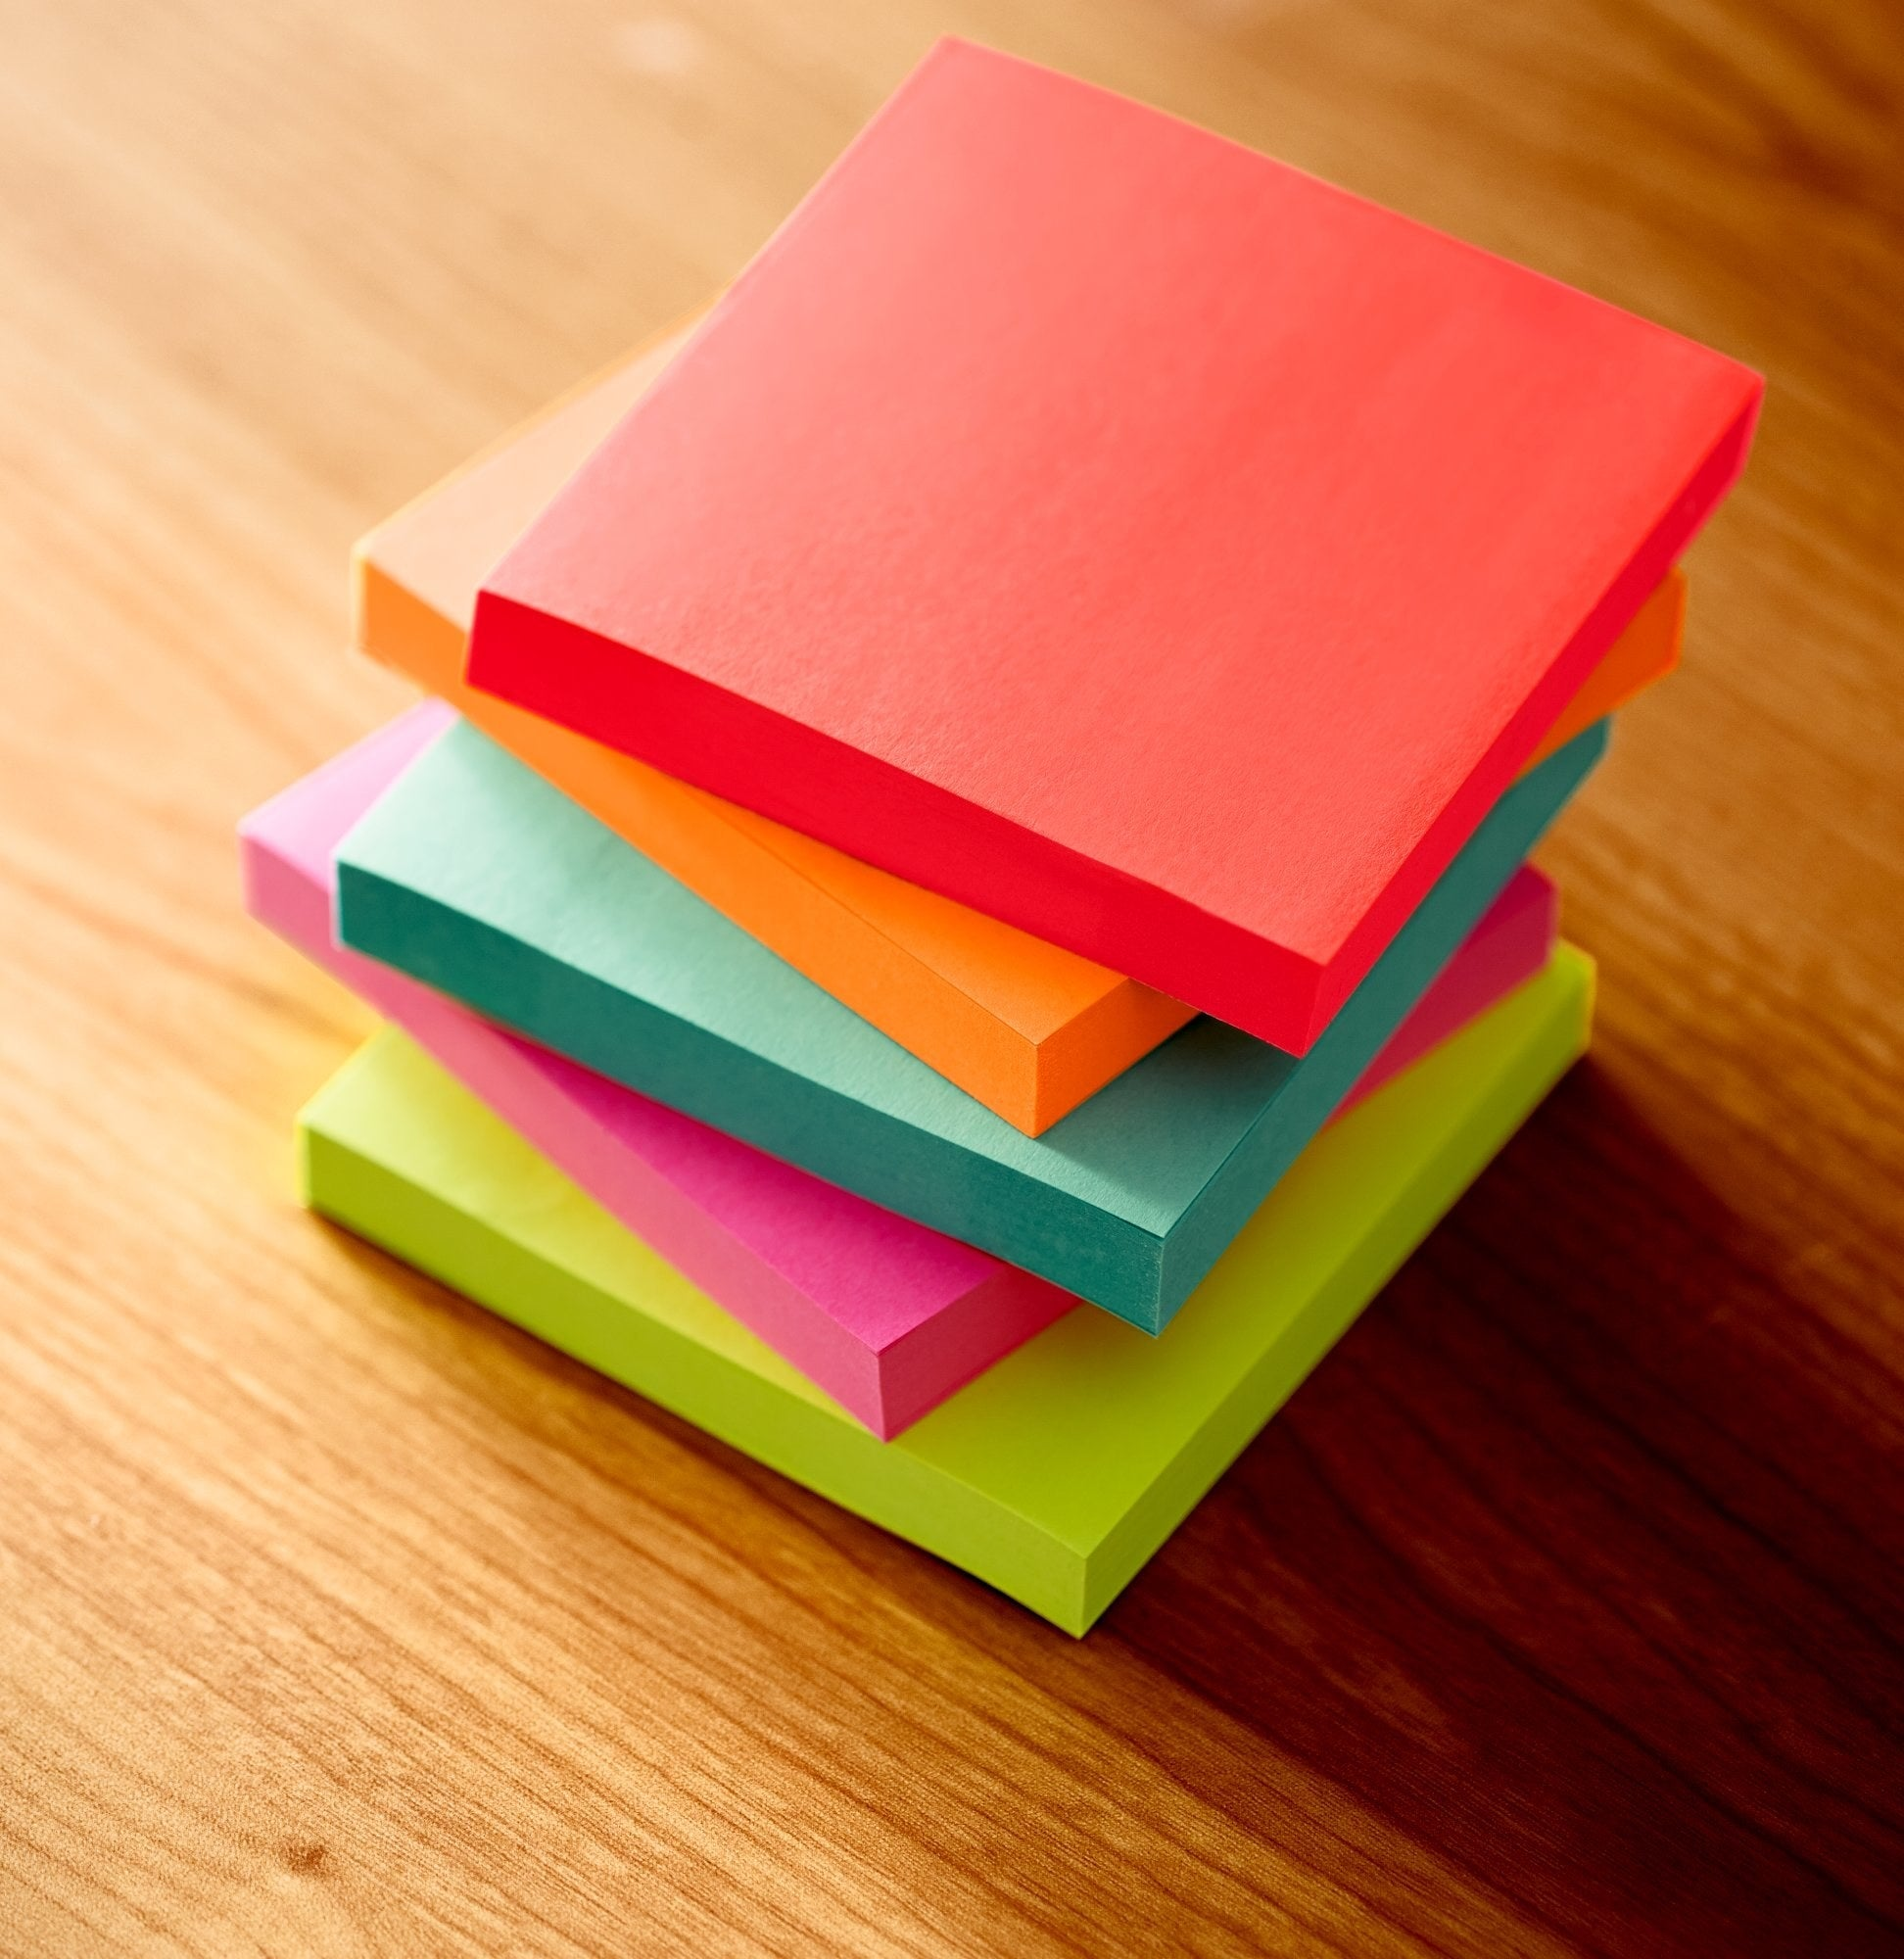 packages of post-it notes in different vibrant colors